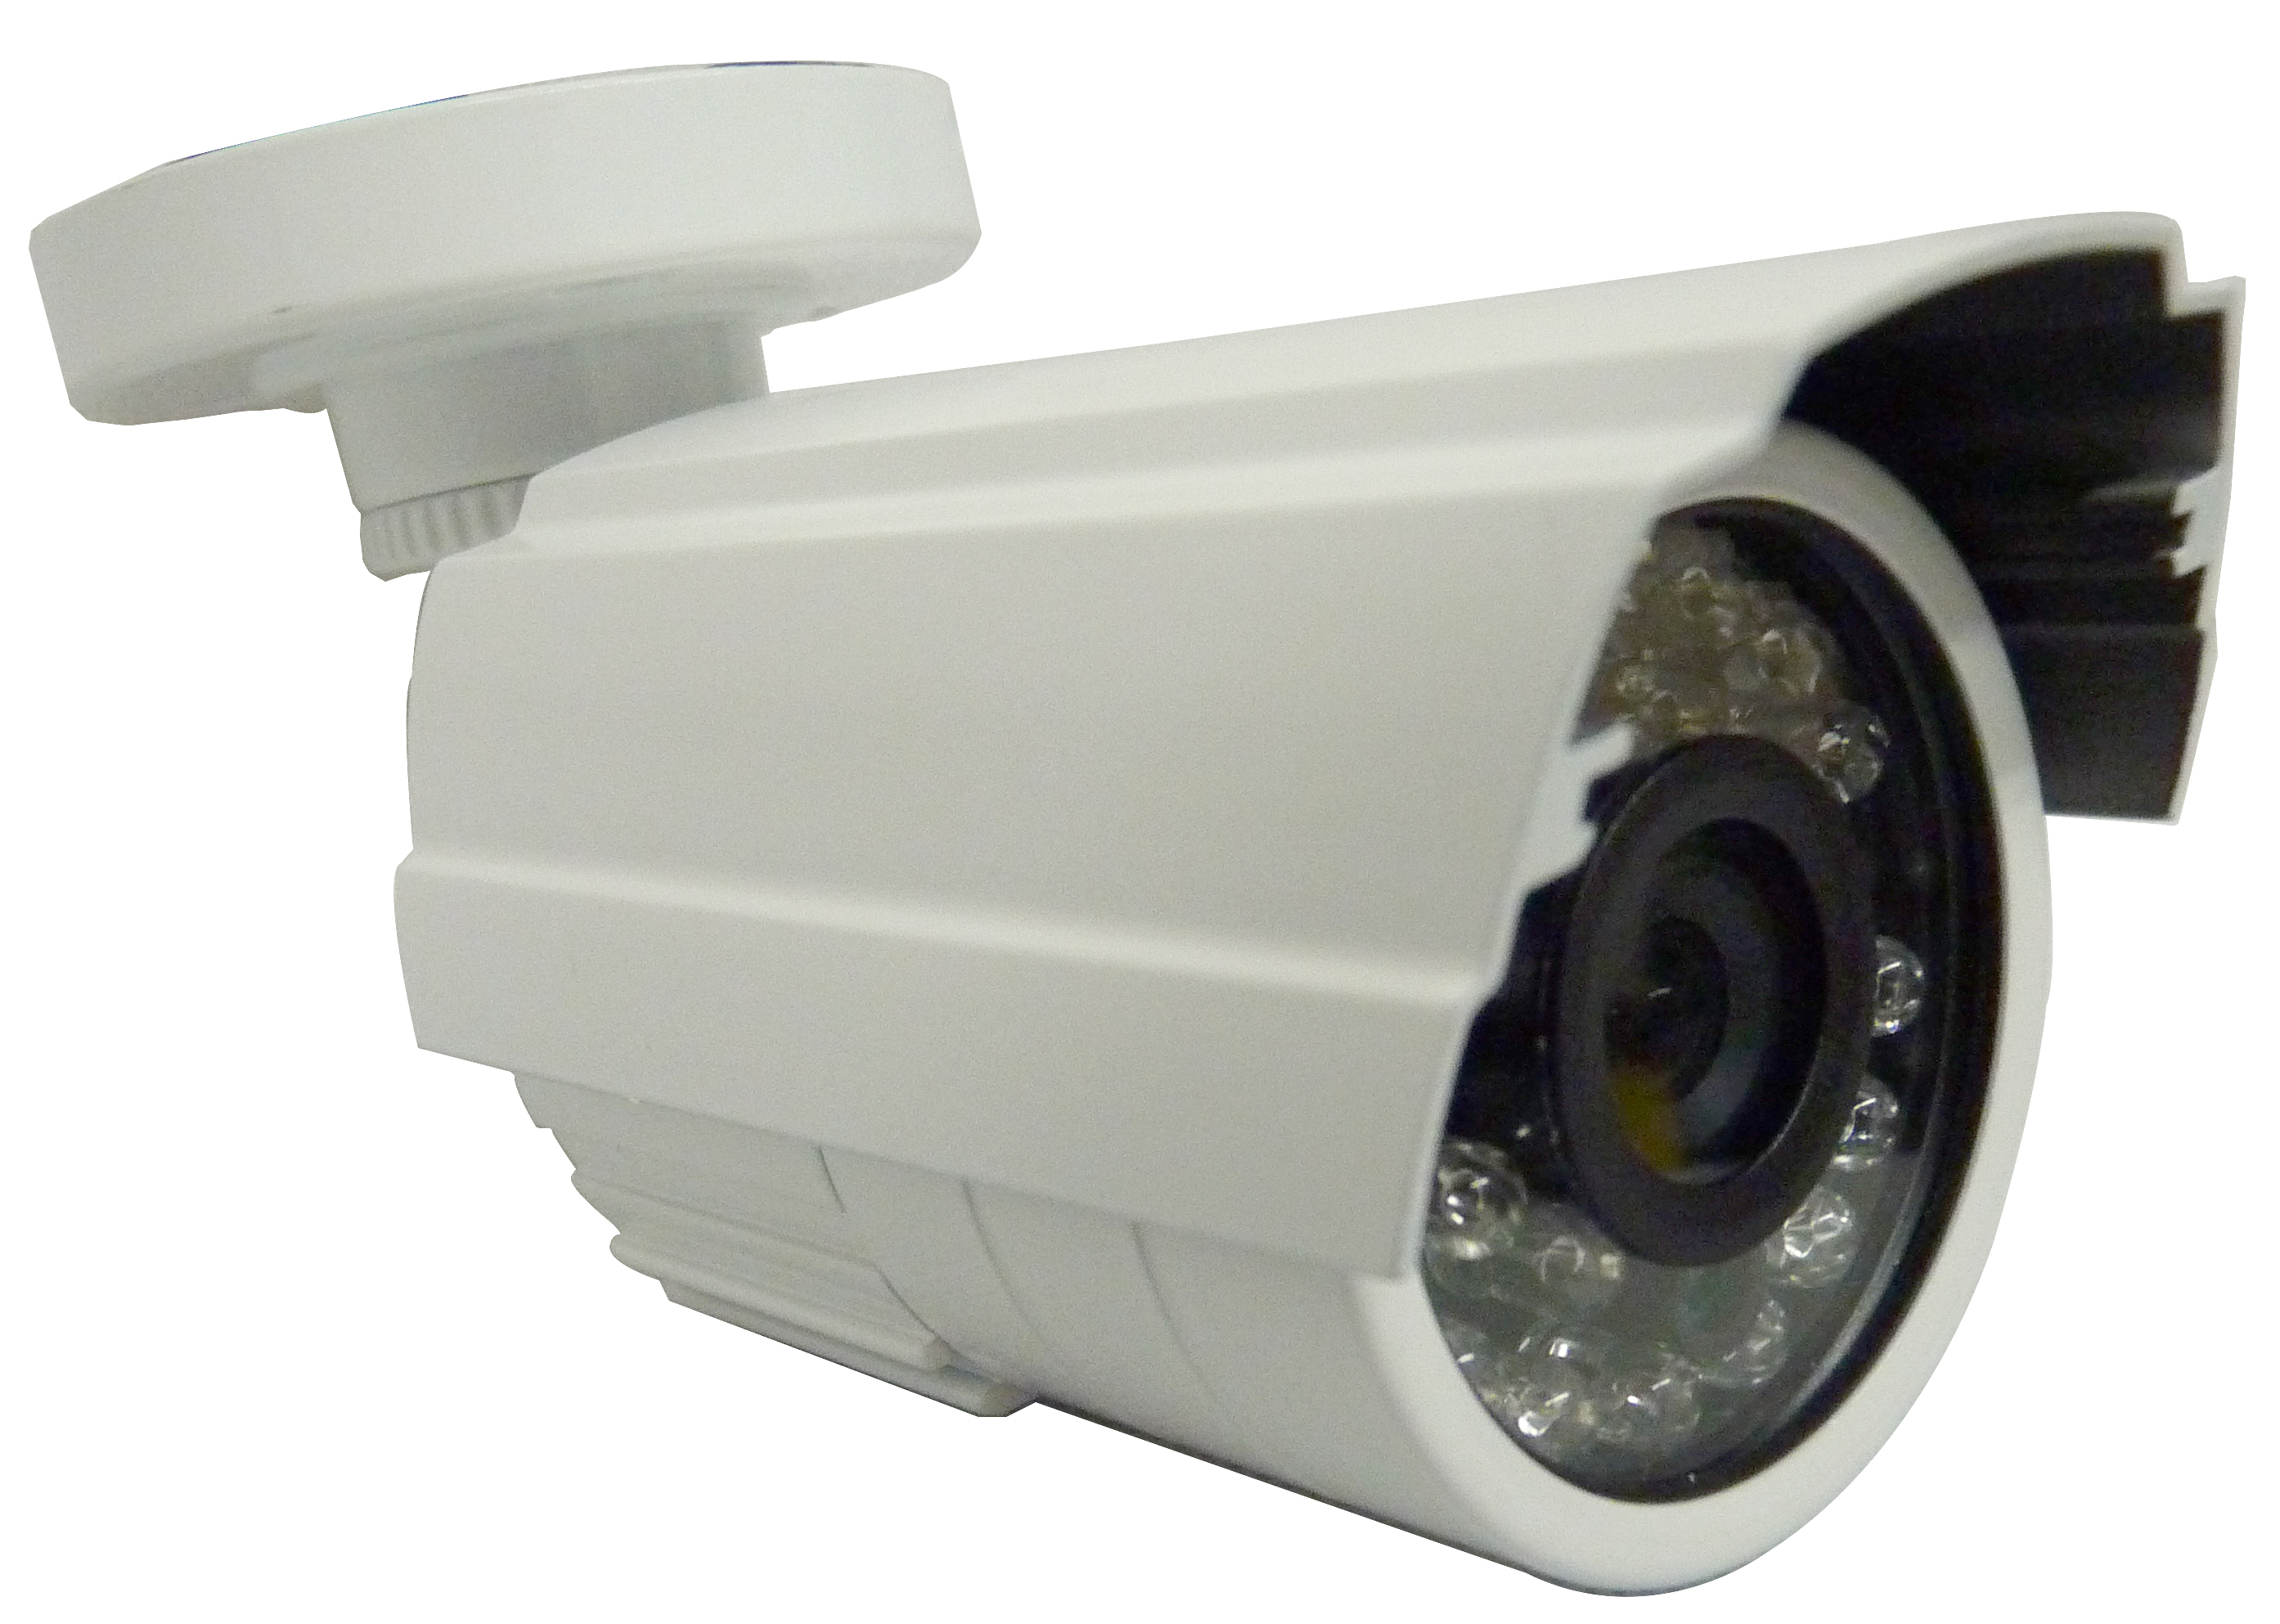 DBS 7015W - 700TVL CCTV Bullet Security Camera - 1/3'' Sony Super HAD CCD II